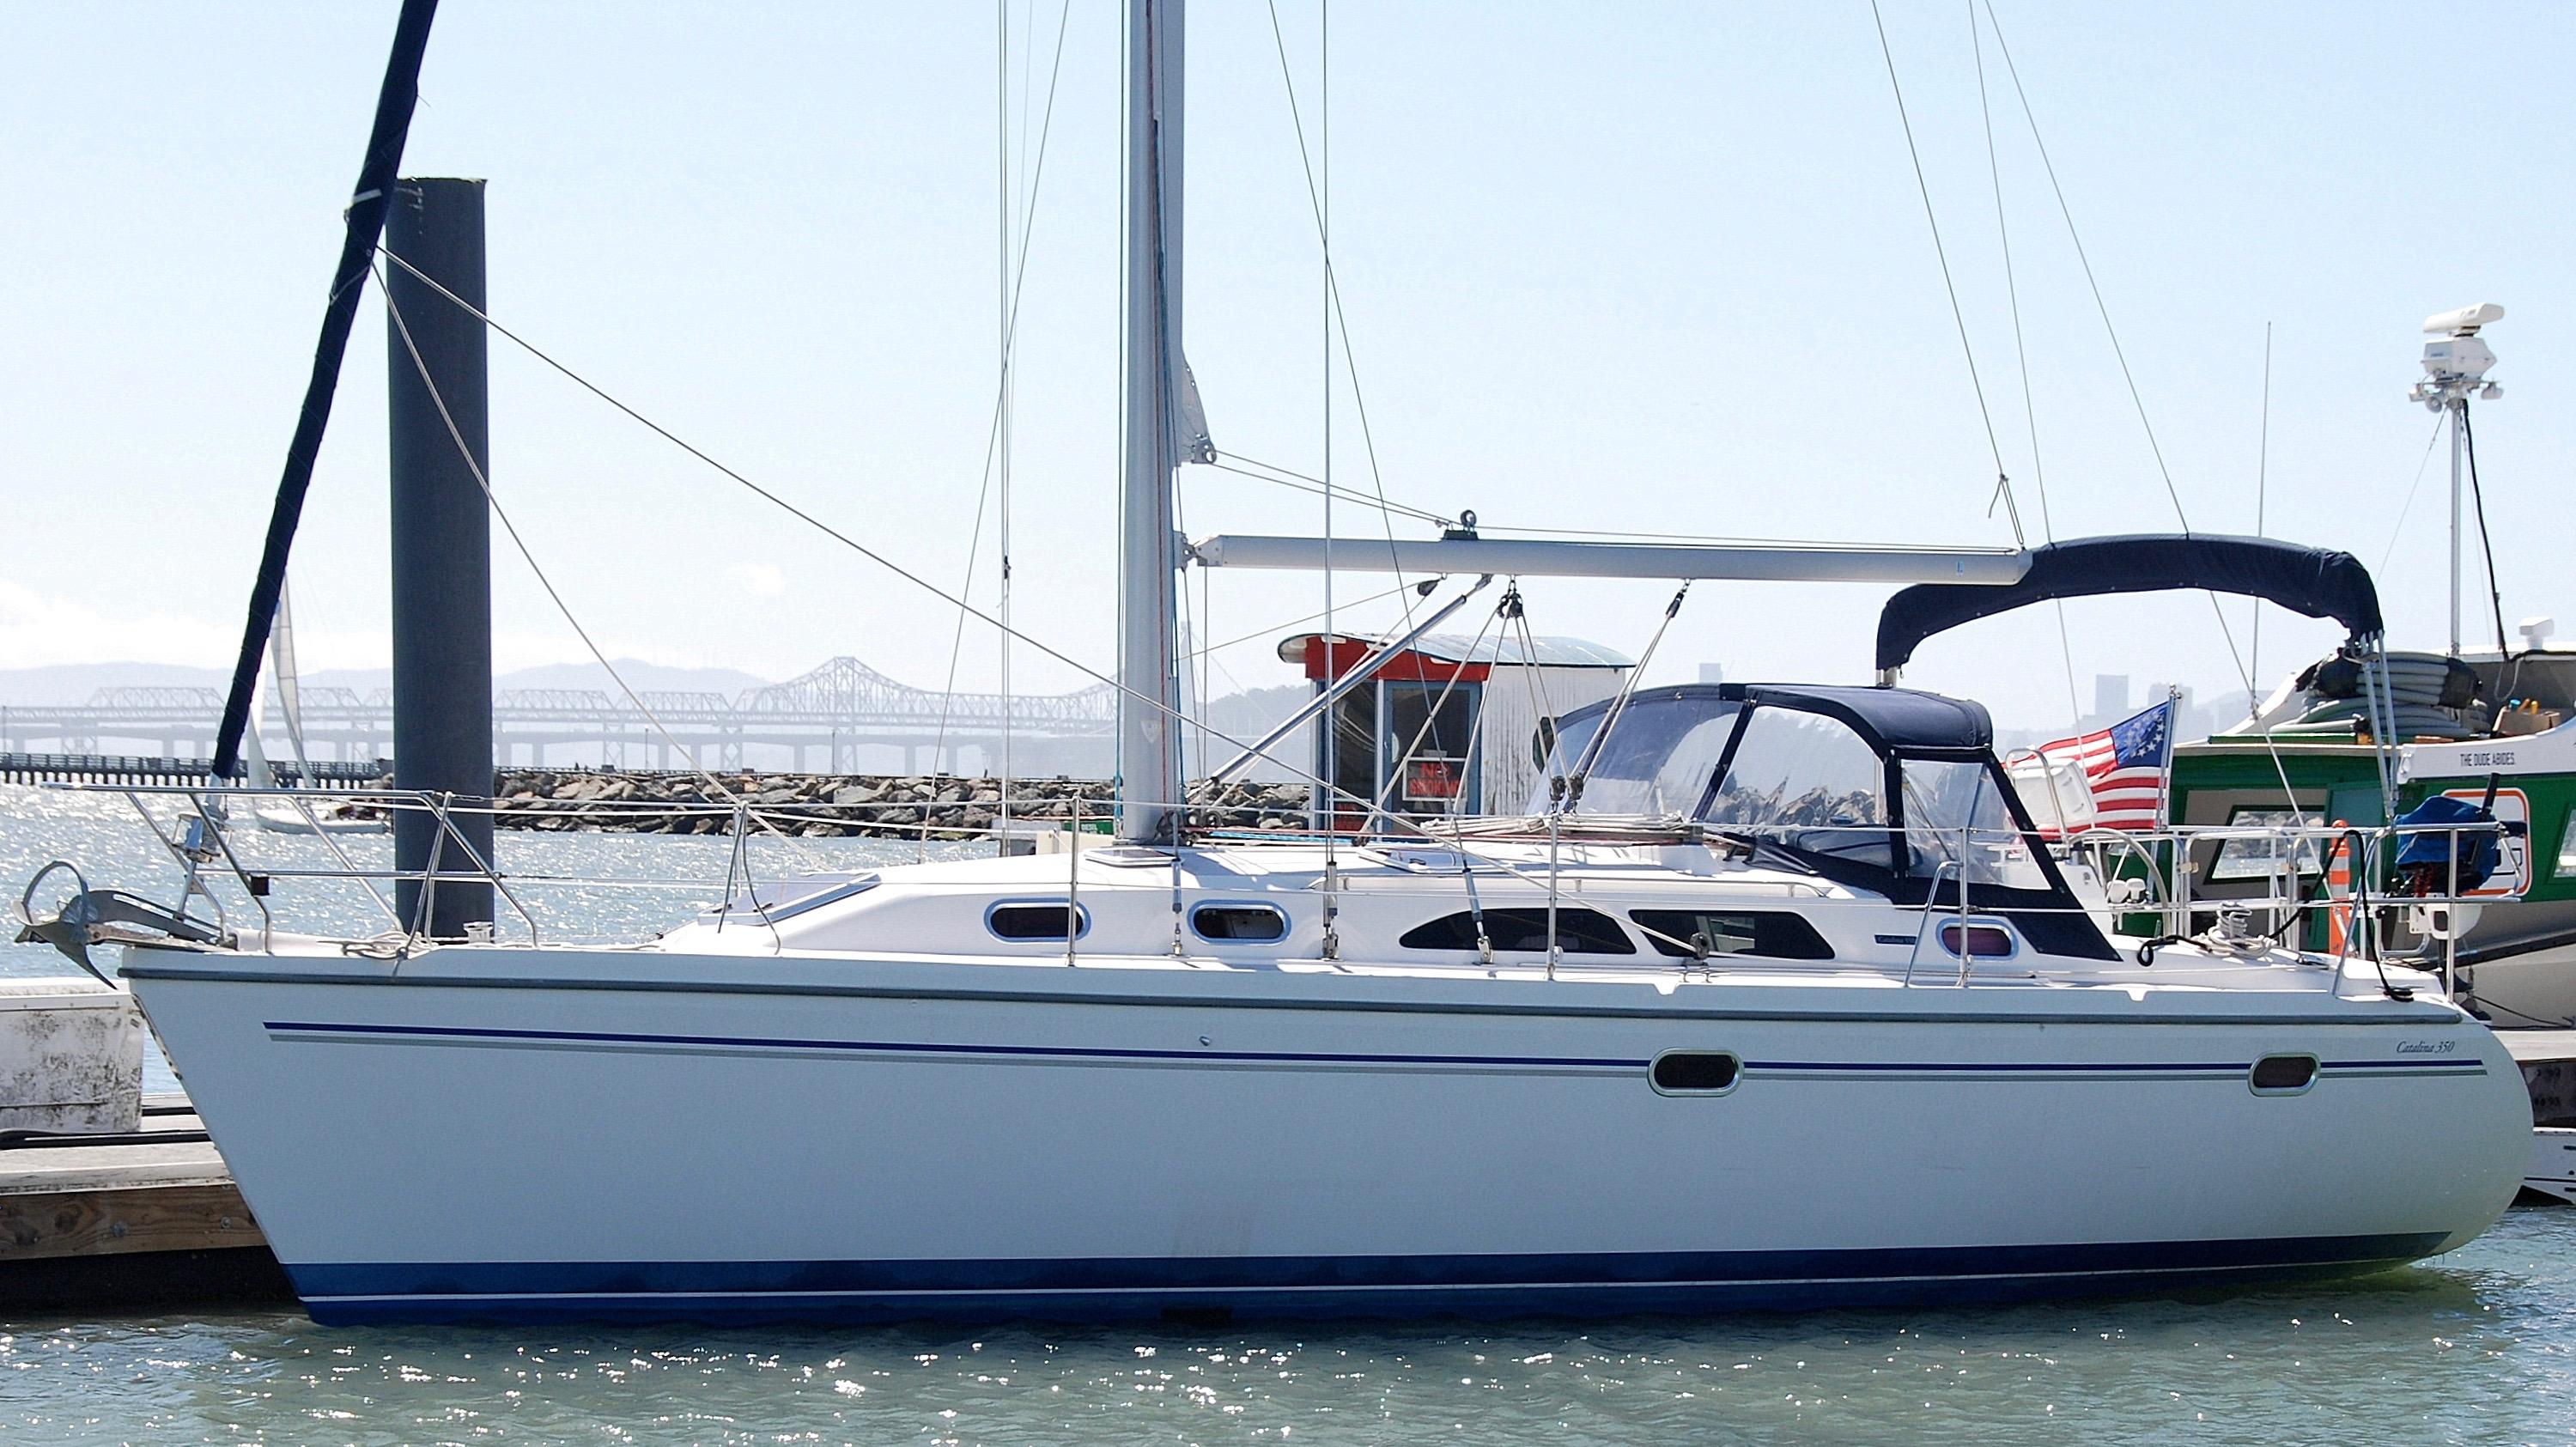 2005 catalina 350 sail boat for sale www yachtworld com rh yachtworld com Galley Catalina 350 Catalina 350 Brochure